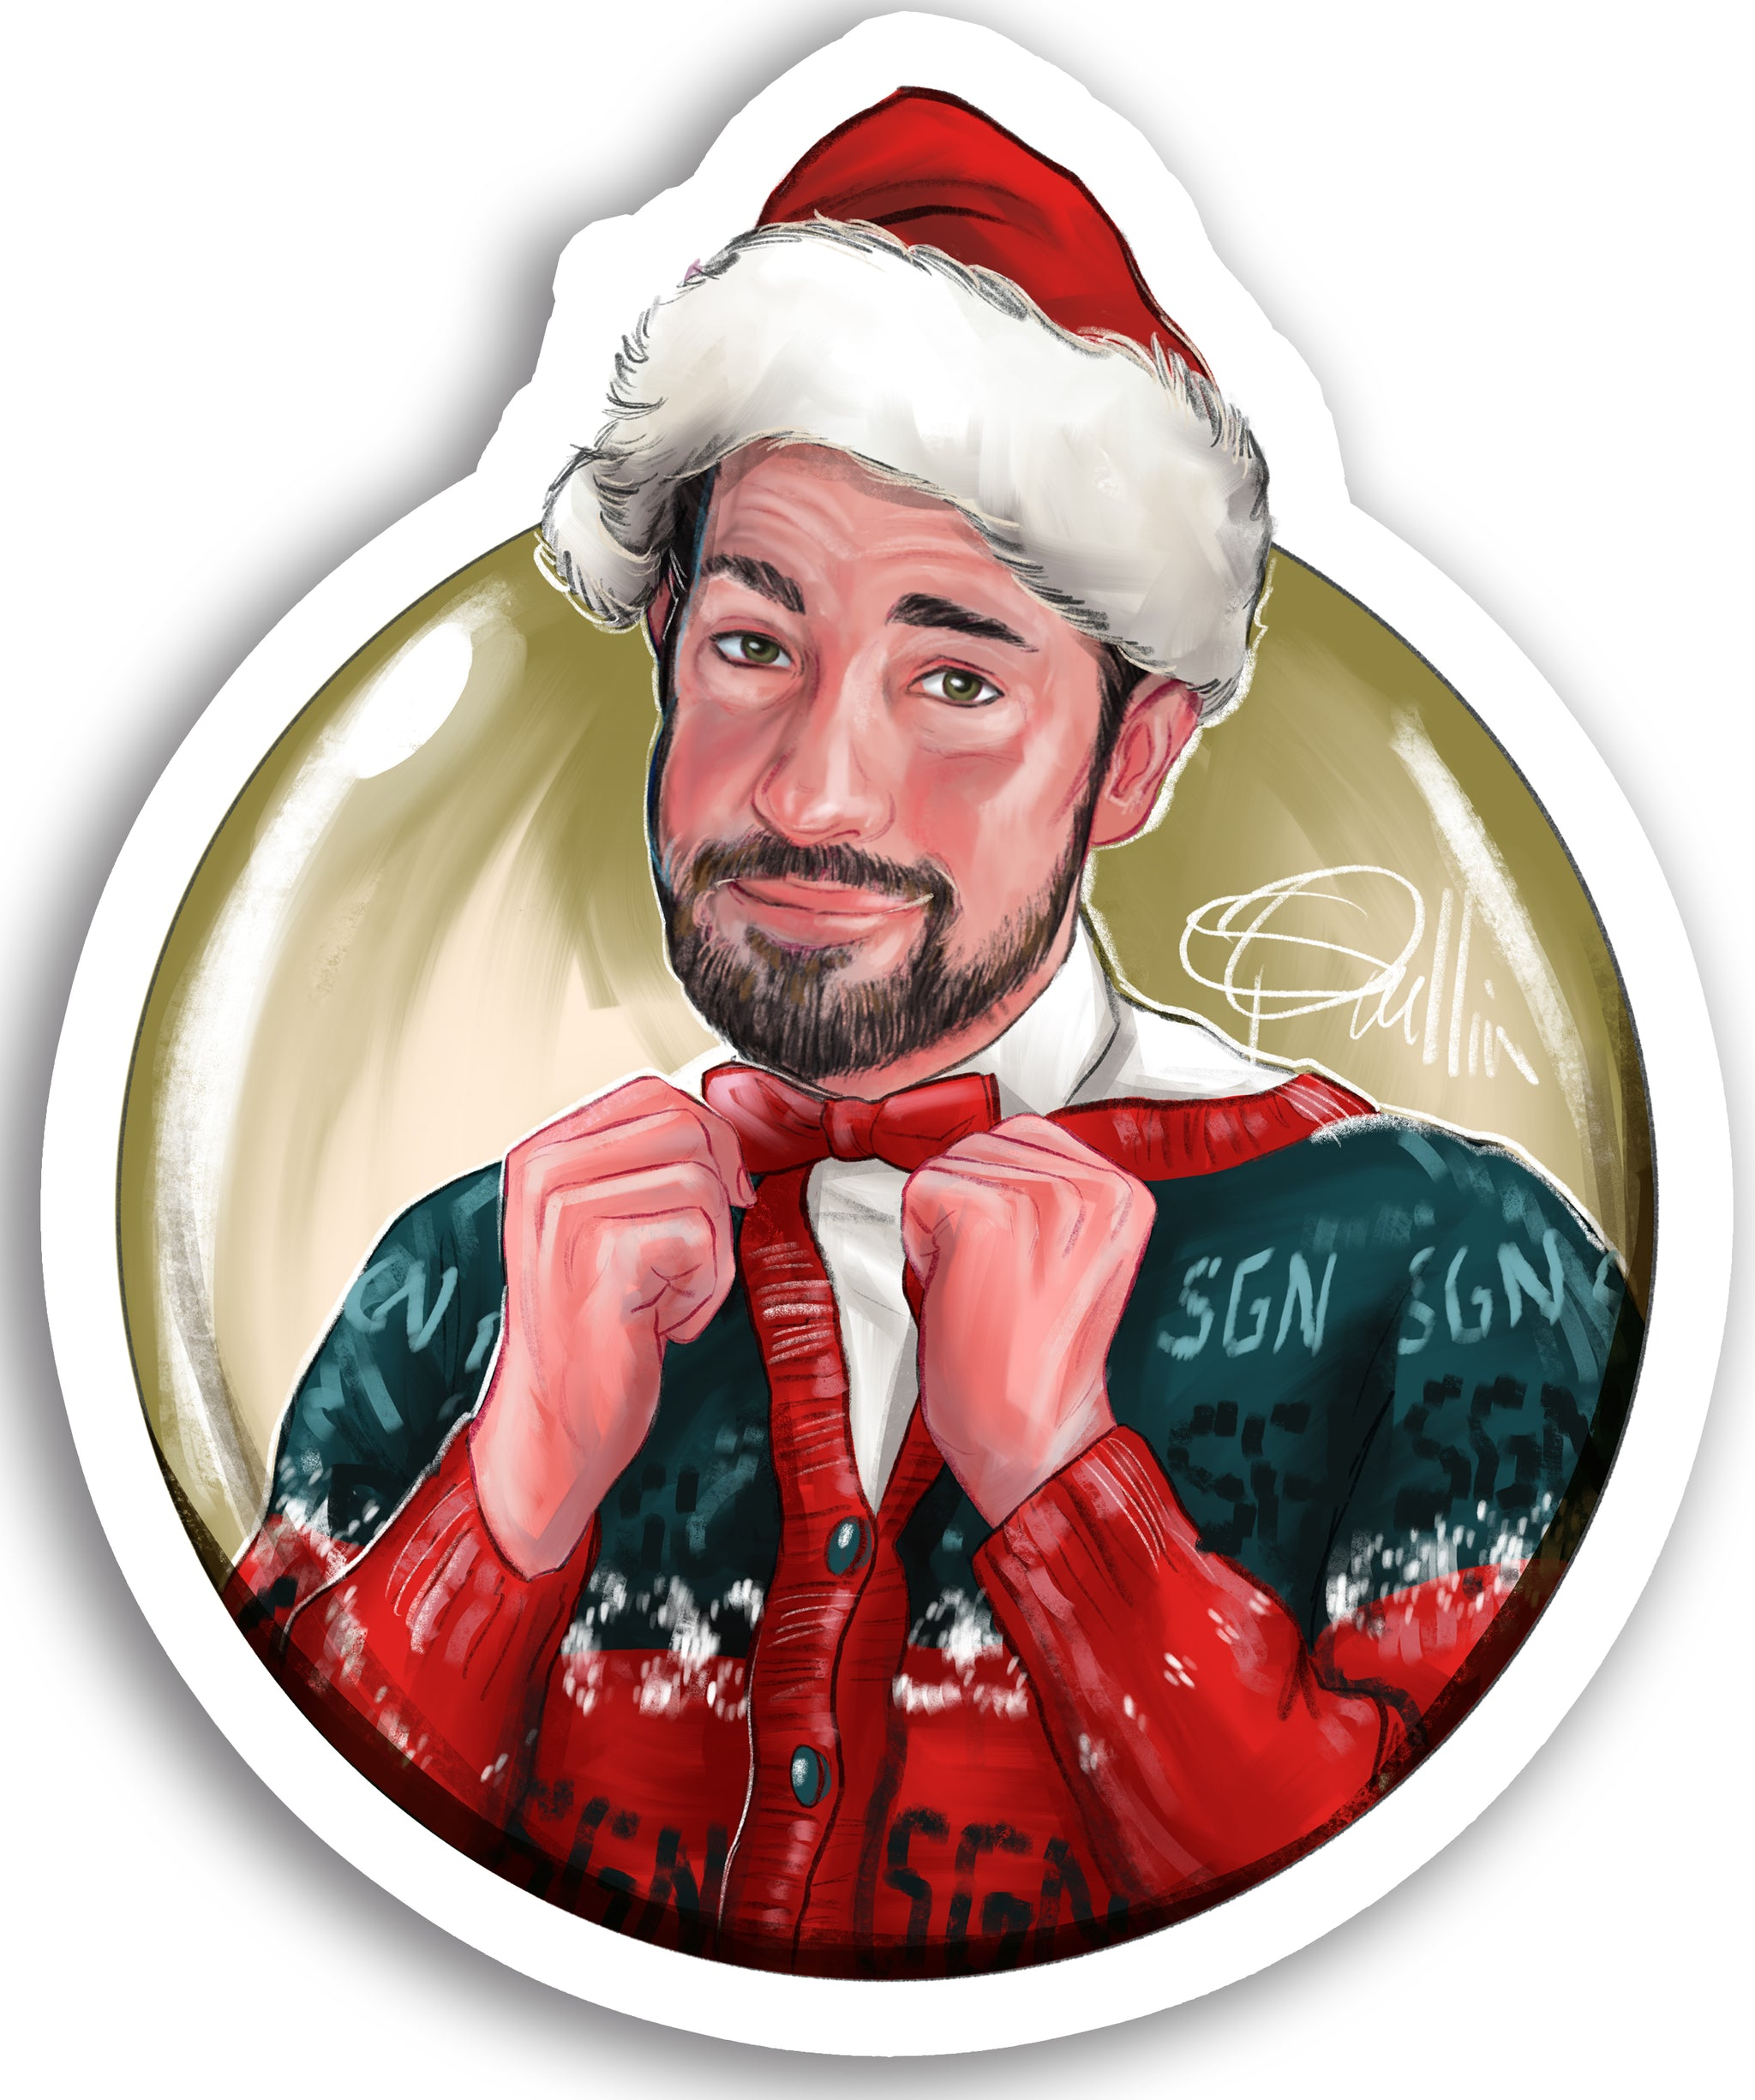 SGN John Christmas Sweater Logo Sticker